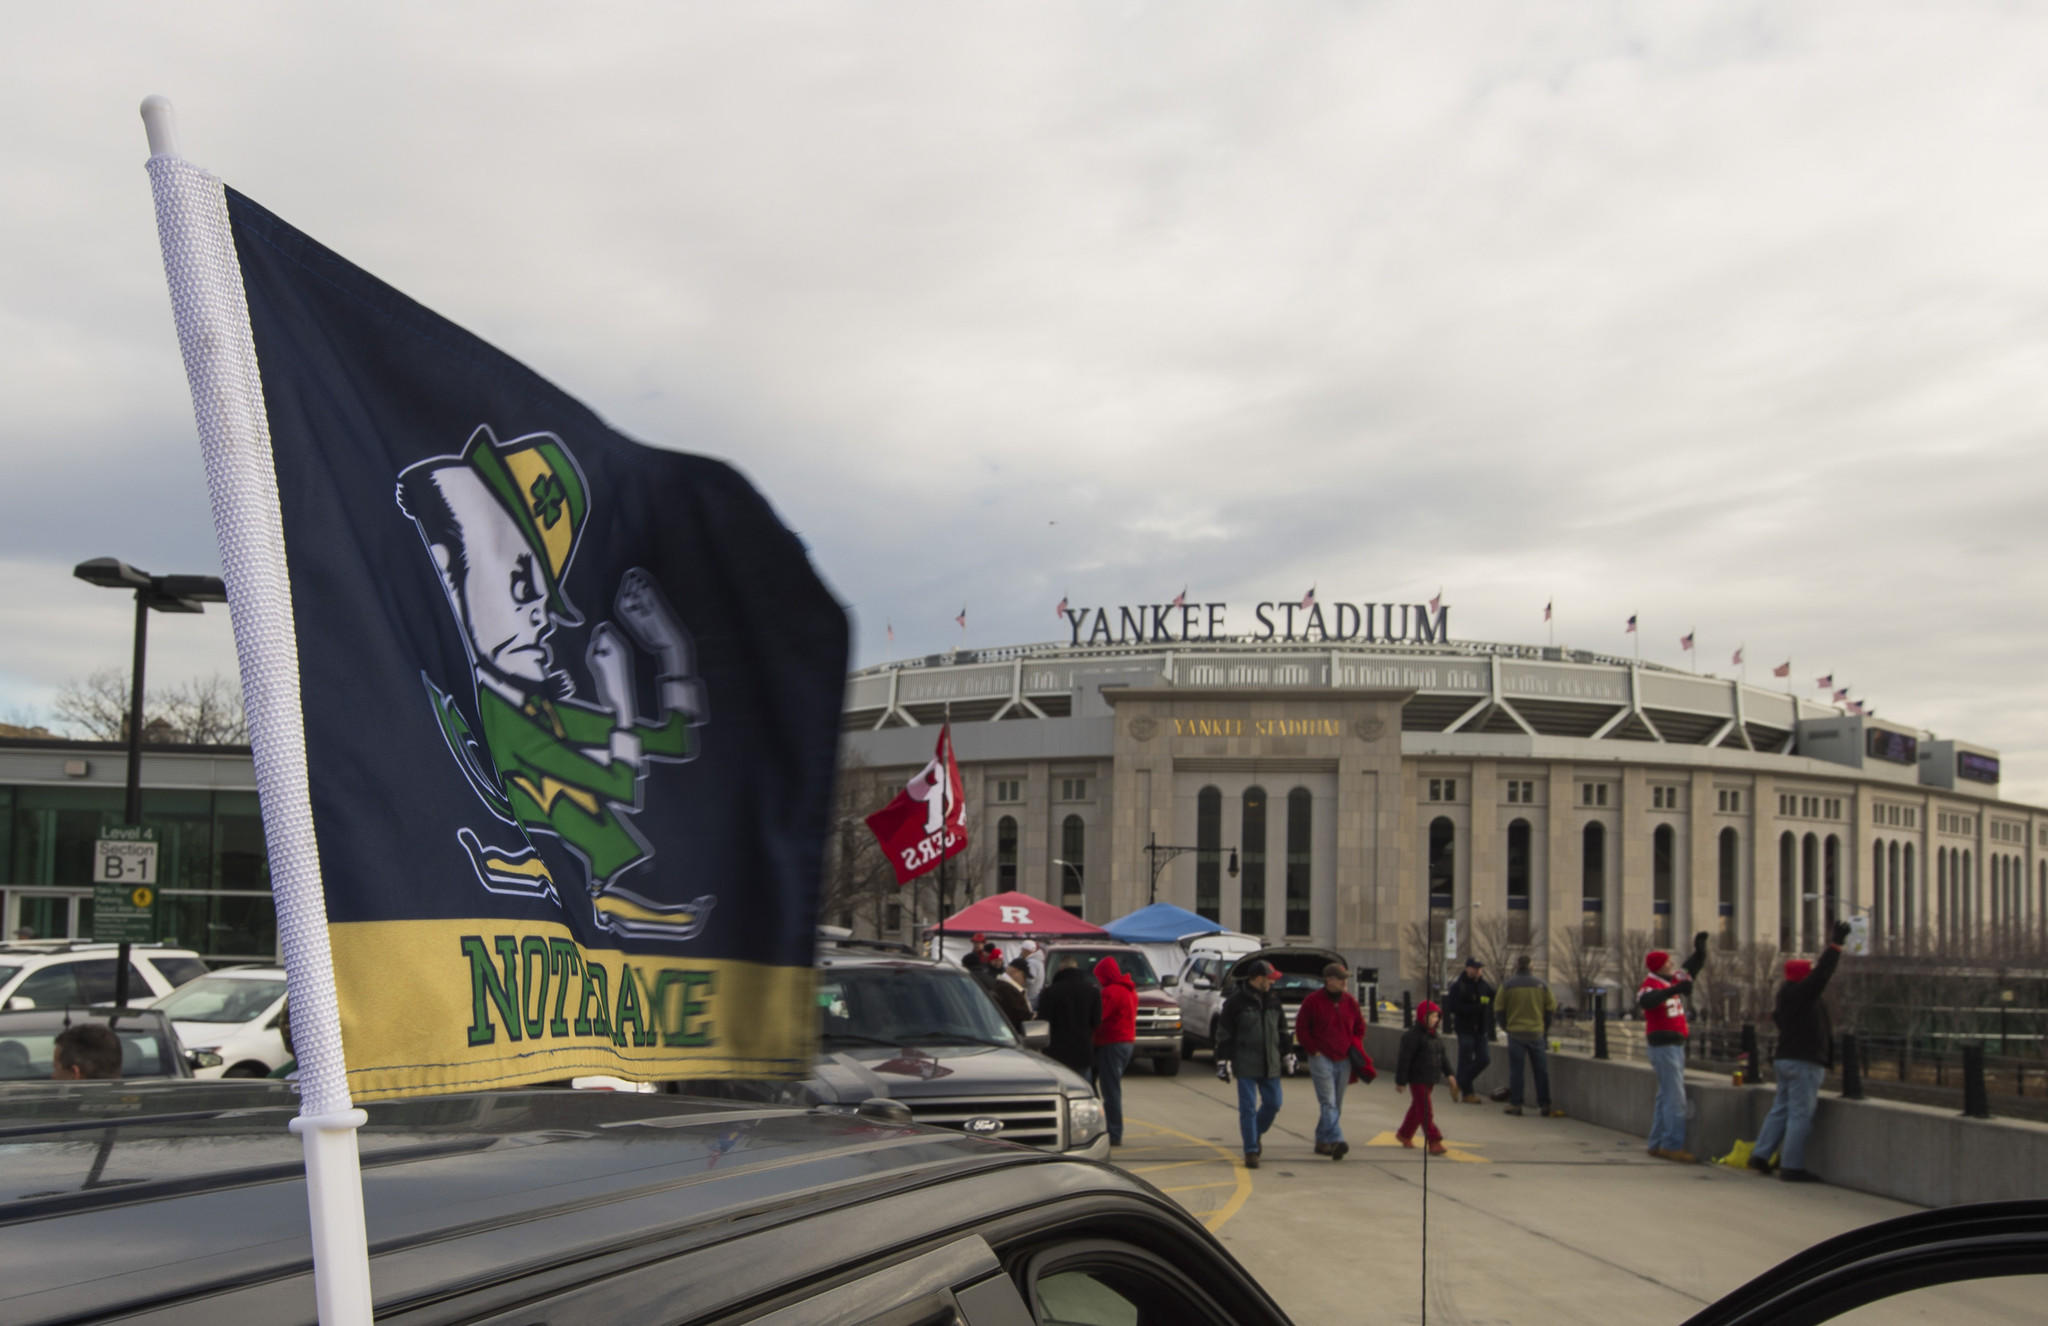 Fans tailgate outside Yankee Stadium before the Pinstripe Bowl game between the Notre Dame Fighting Irish and the Rutgers Scarlet Knights.